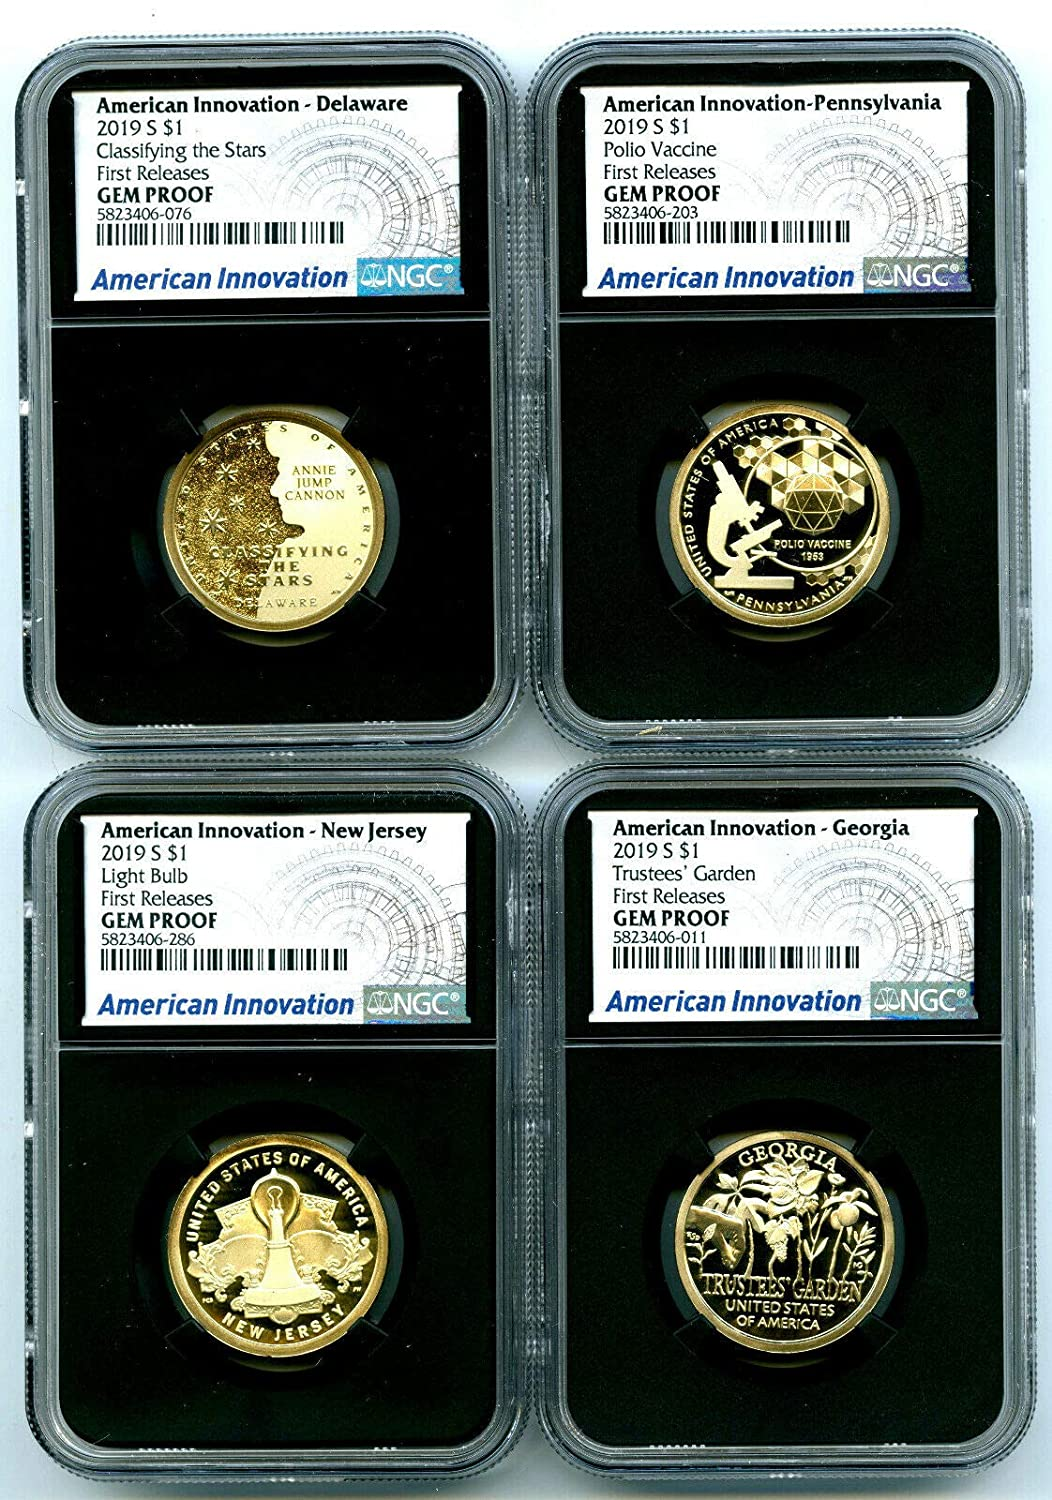 2019 S AMERICAN INNOVATION FIRST RELEASES 4-COIN DOLLAR SET $1 GEM PROOF NGC